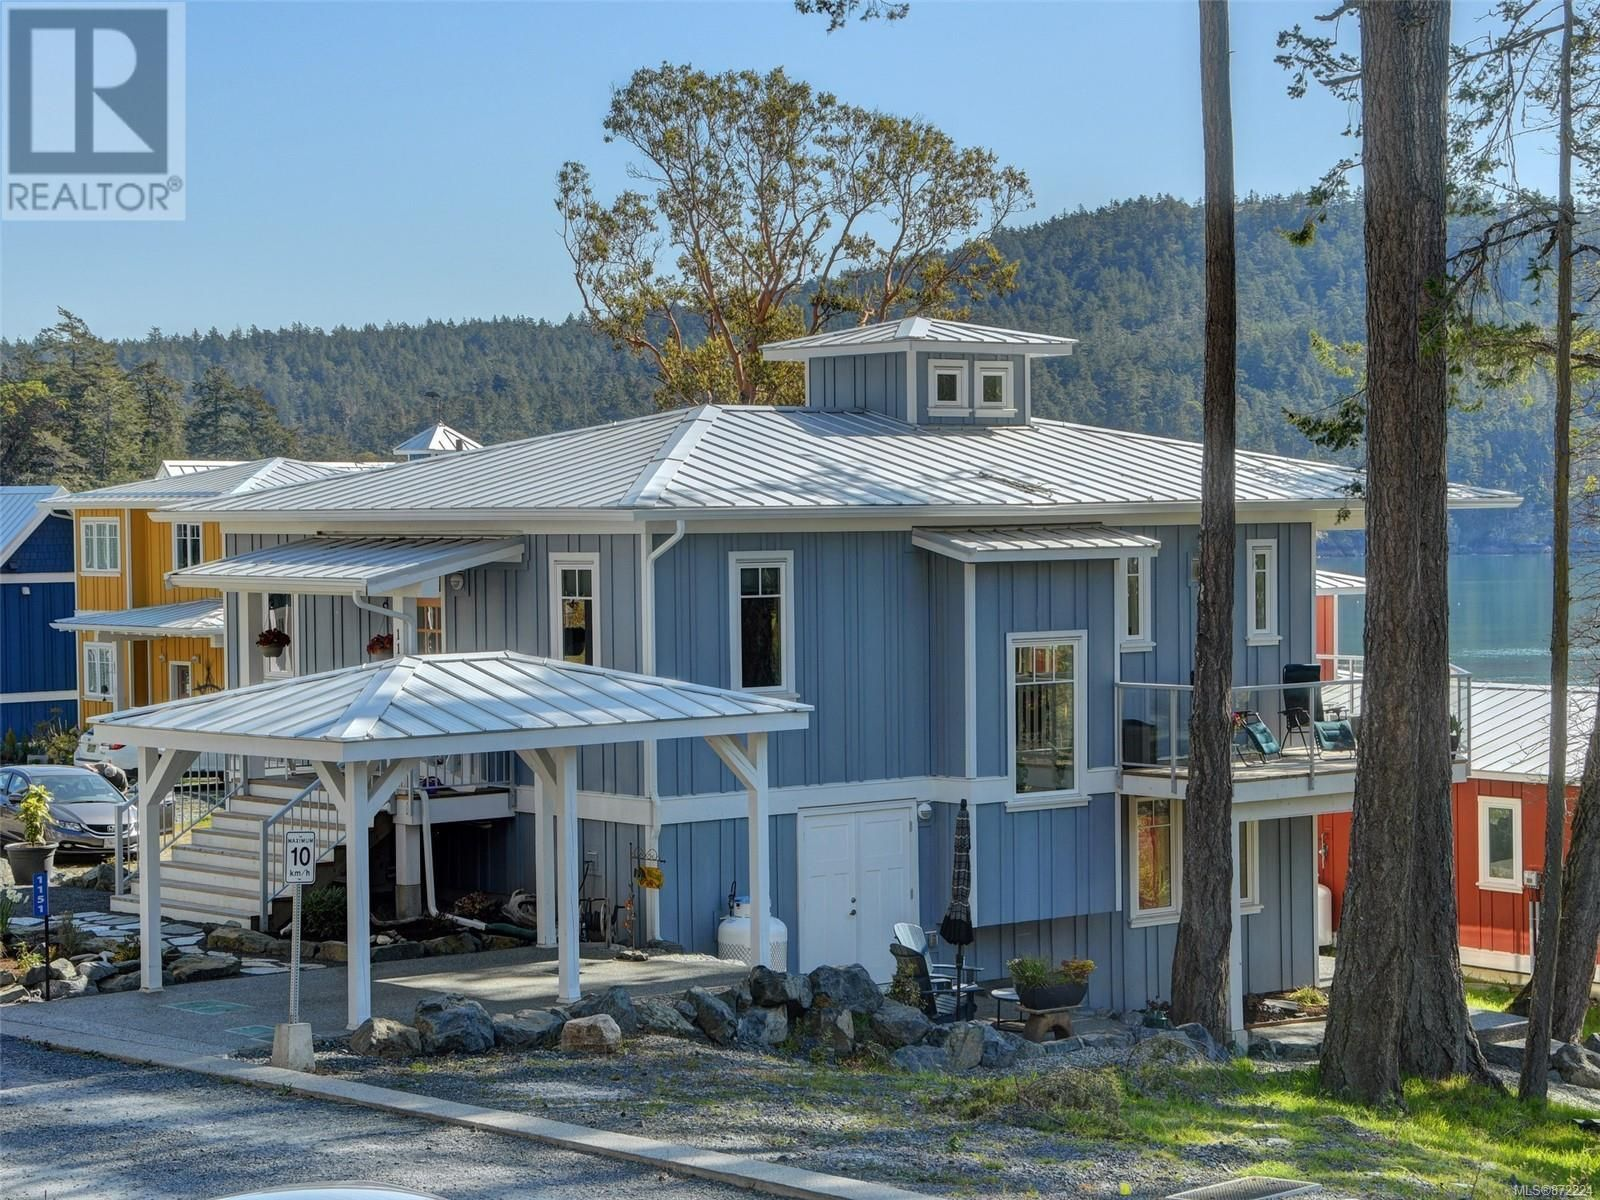 Main Photo: 1151 Marina Dr in Sooke: House for sale : MLS®# 872224